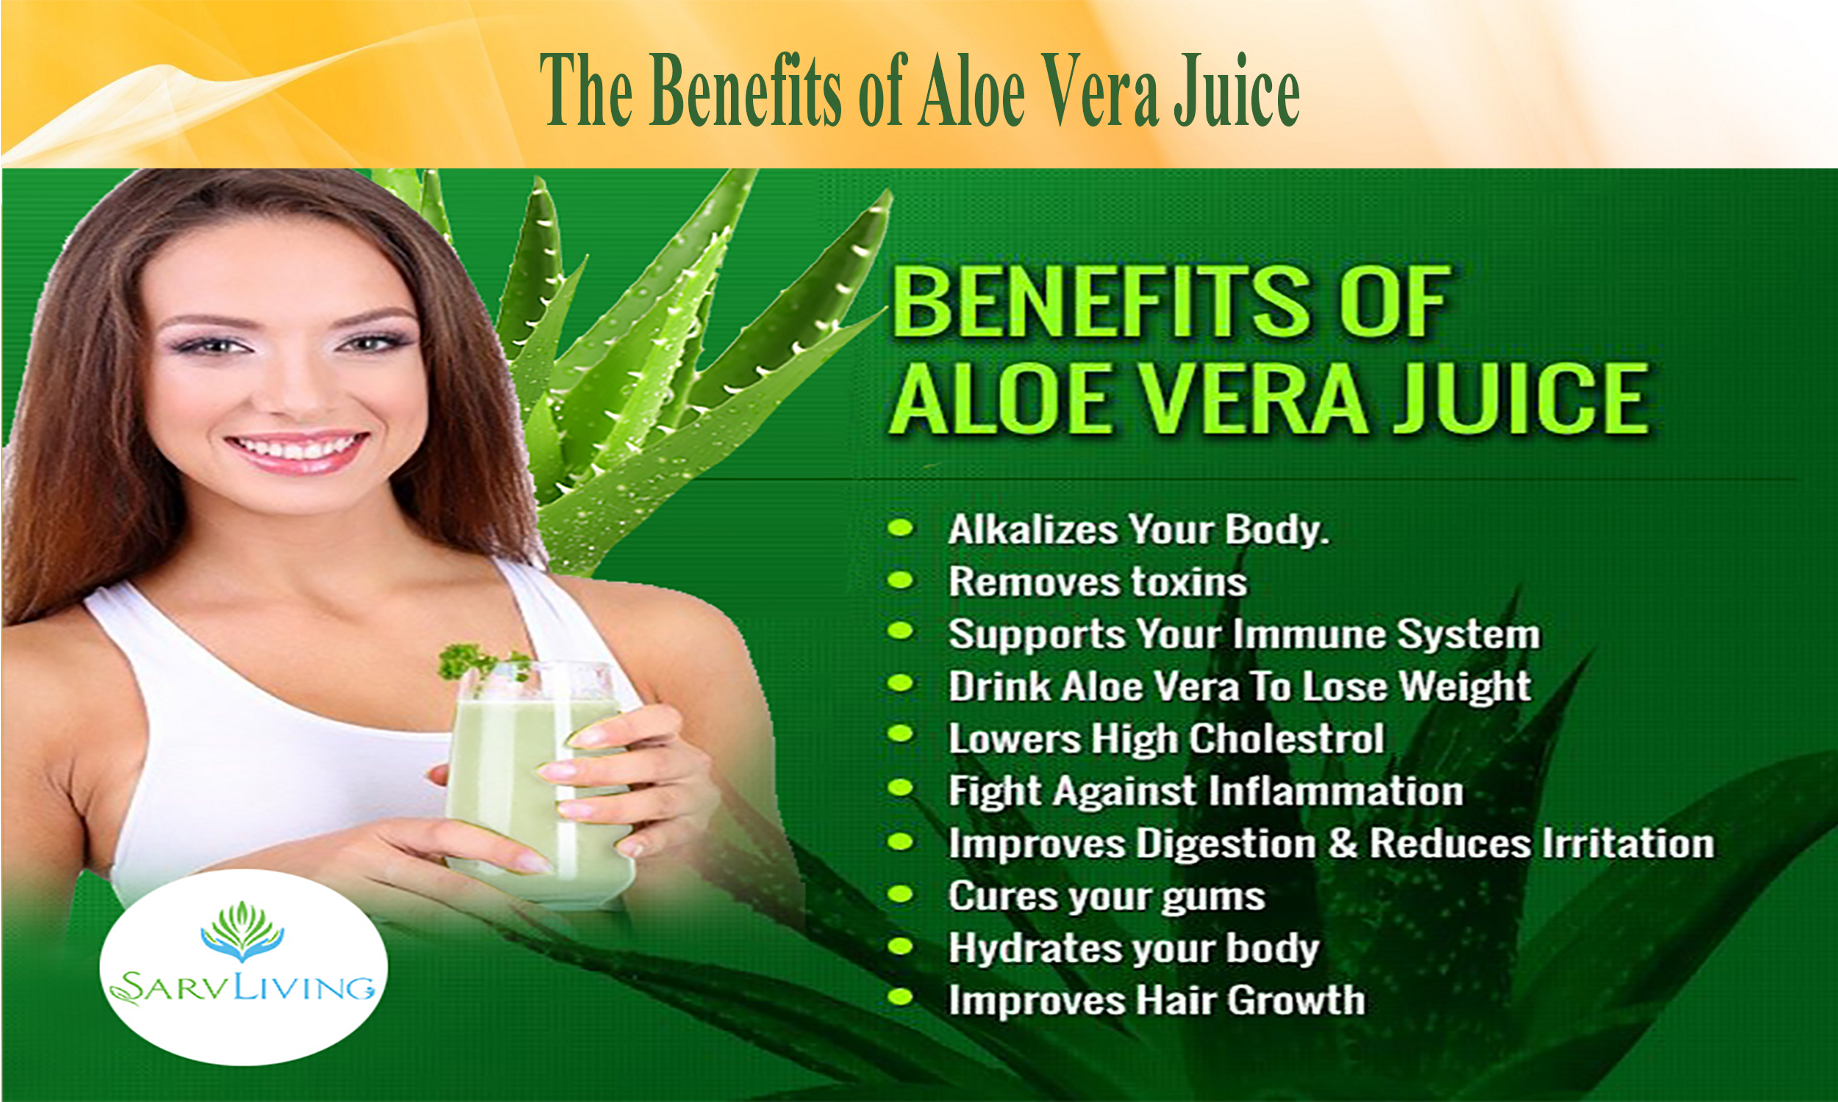 health benefits and risk of drinking aloe vera juice |